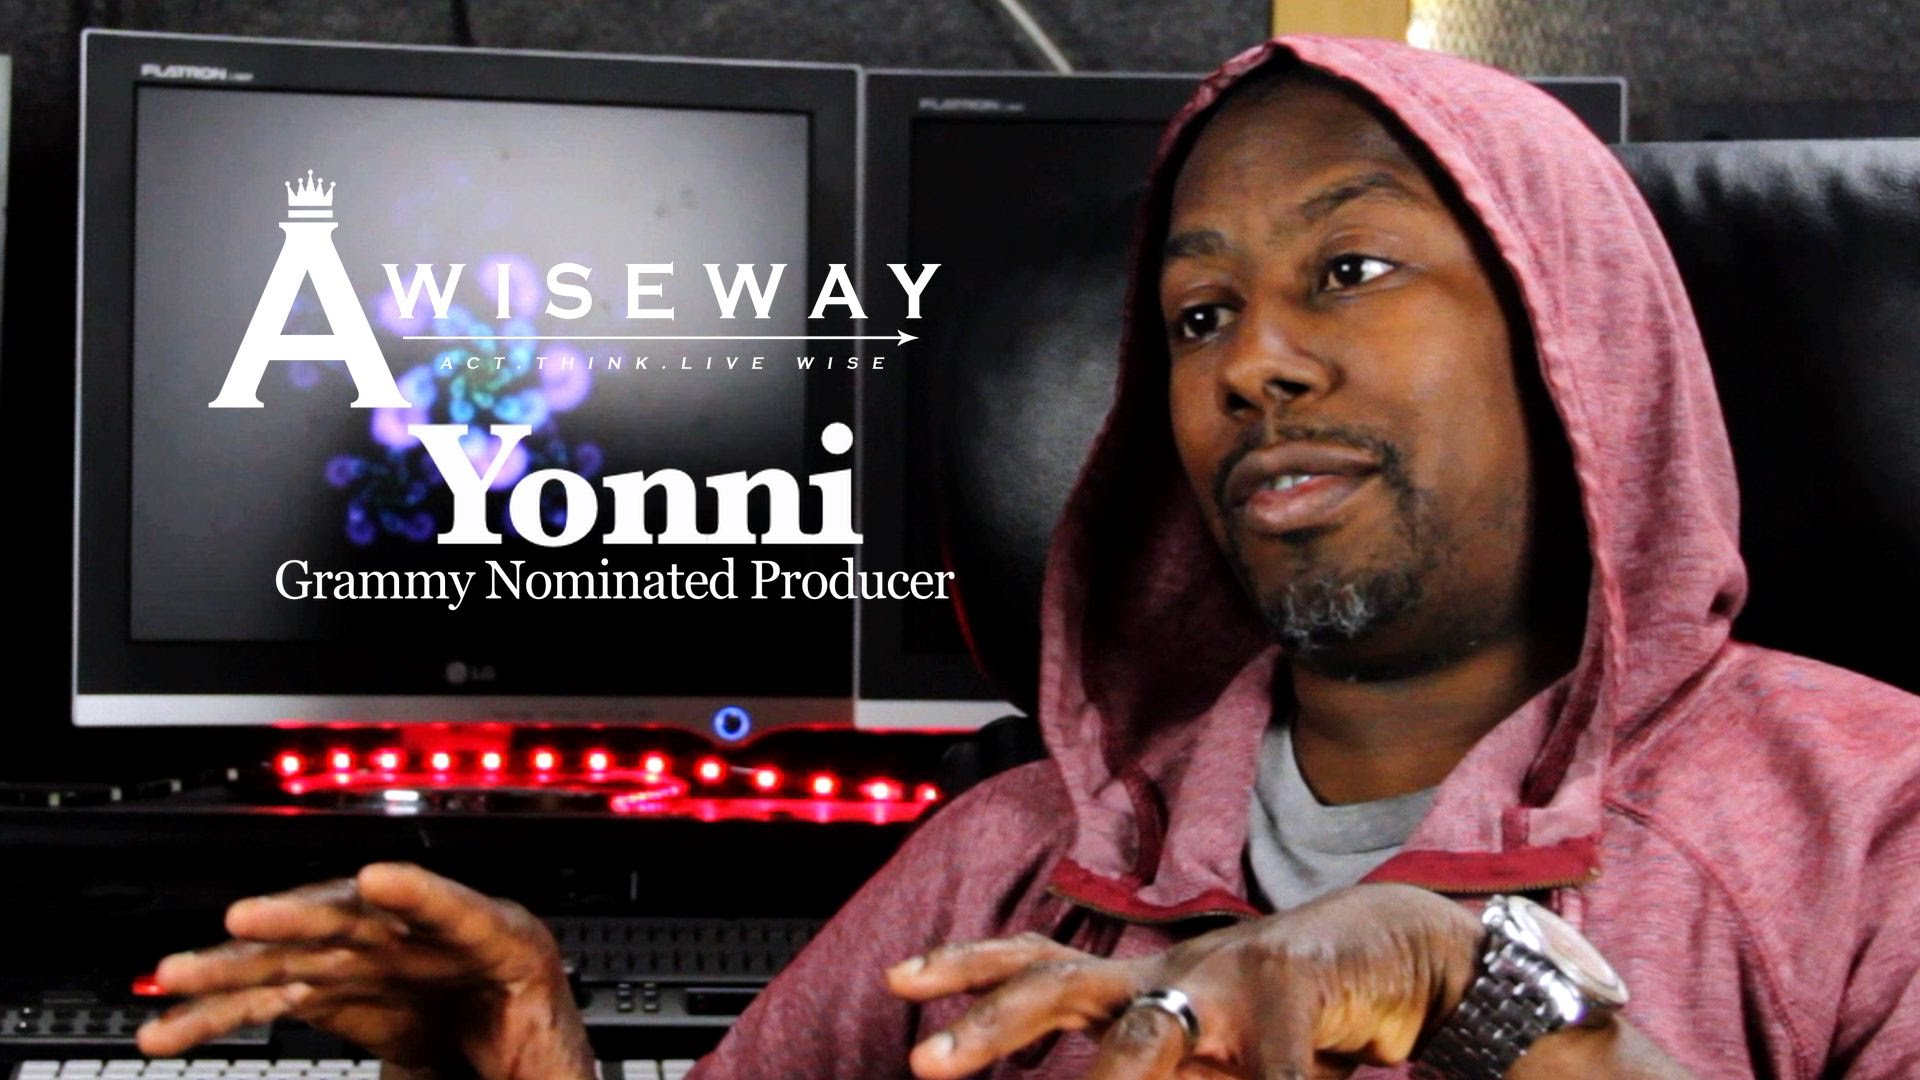 Grammy Nominated Producer Gives Story on How He Started Producing for Lil Wayne